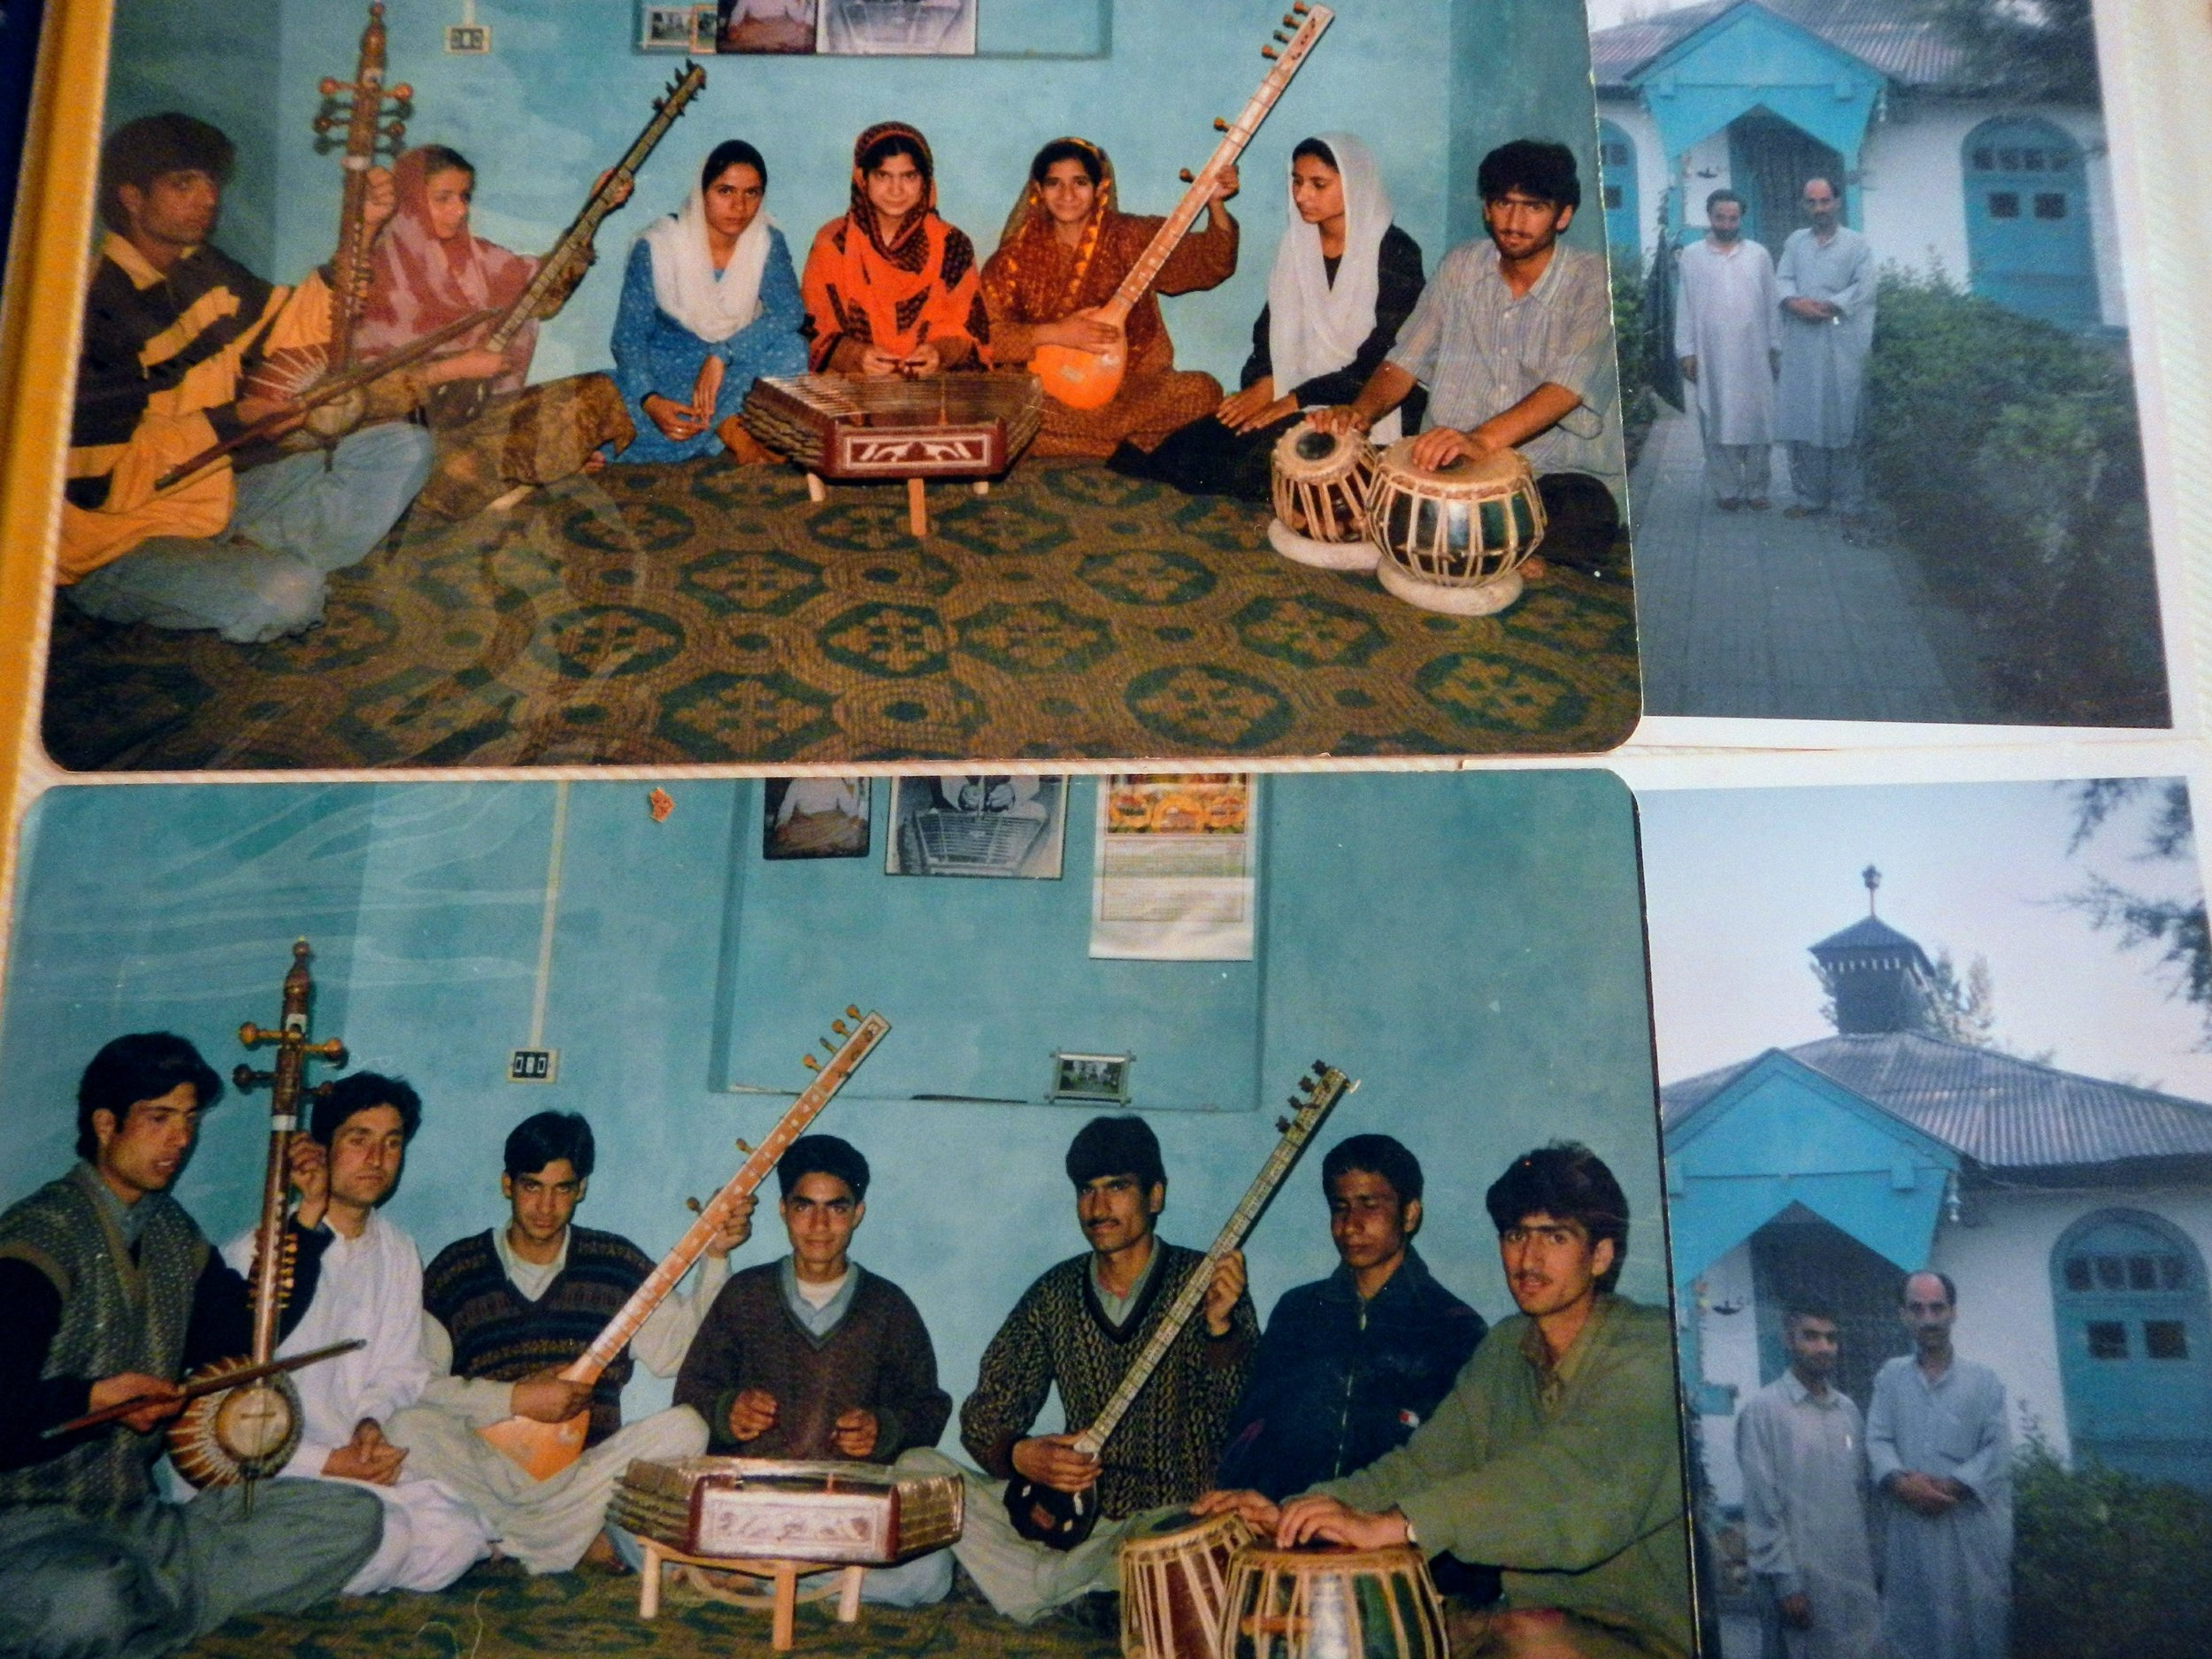 A photo album with students—girls and boys—who trained with Ustad Mohammad Yaqoob Sheikh in Kashmiri classical music in Srinagar, India. Photo by Priyadarshini Sen.